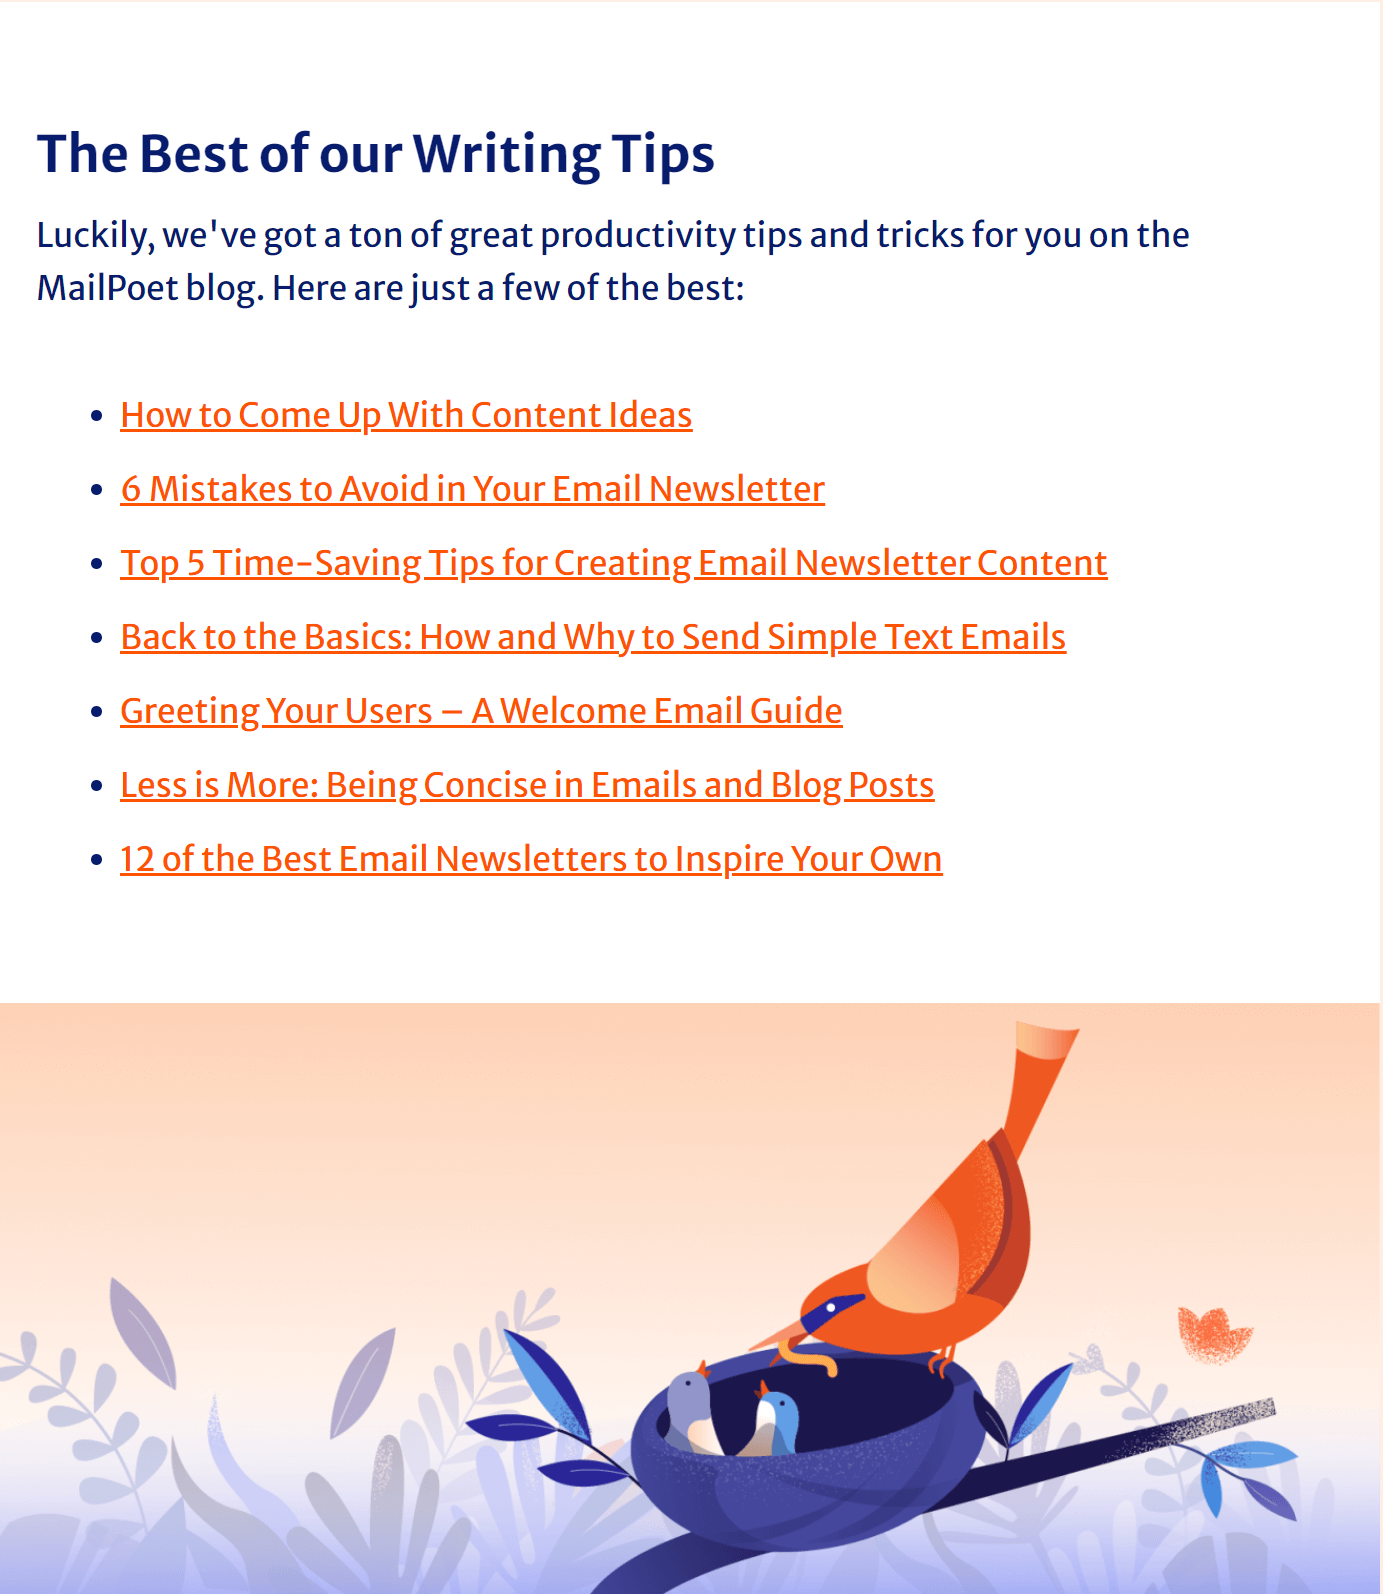 Example of links in an email course from MailPoet